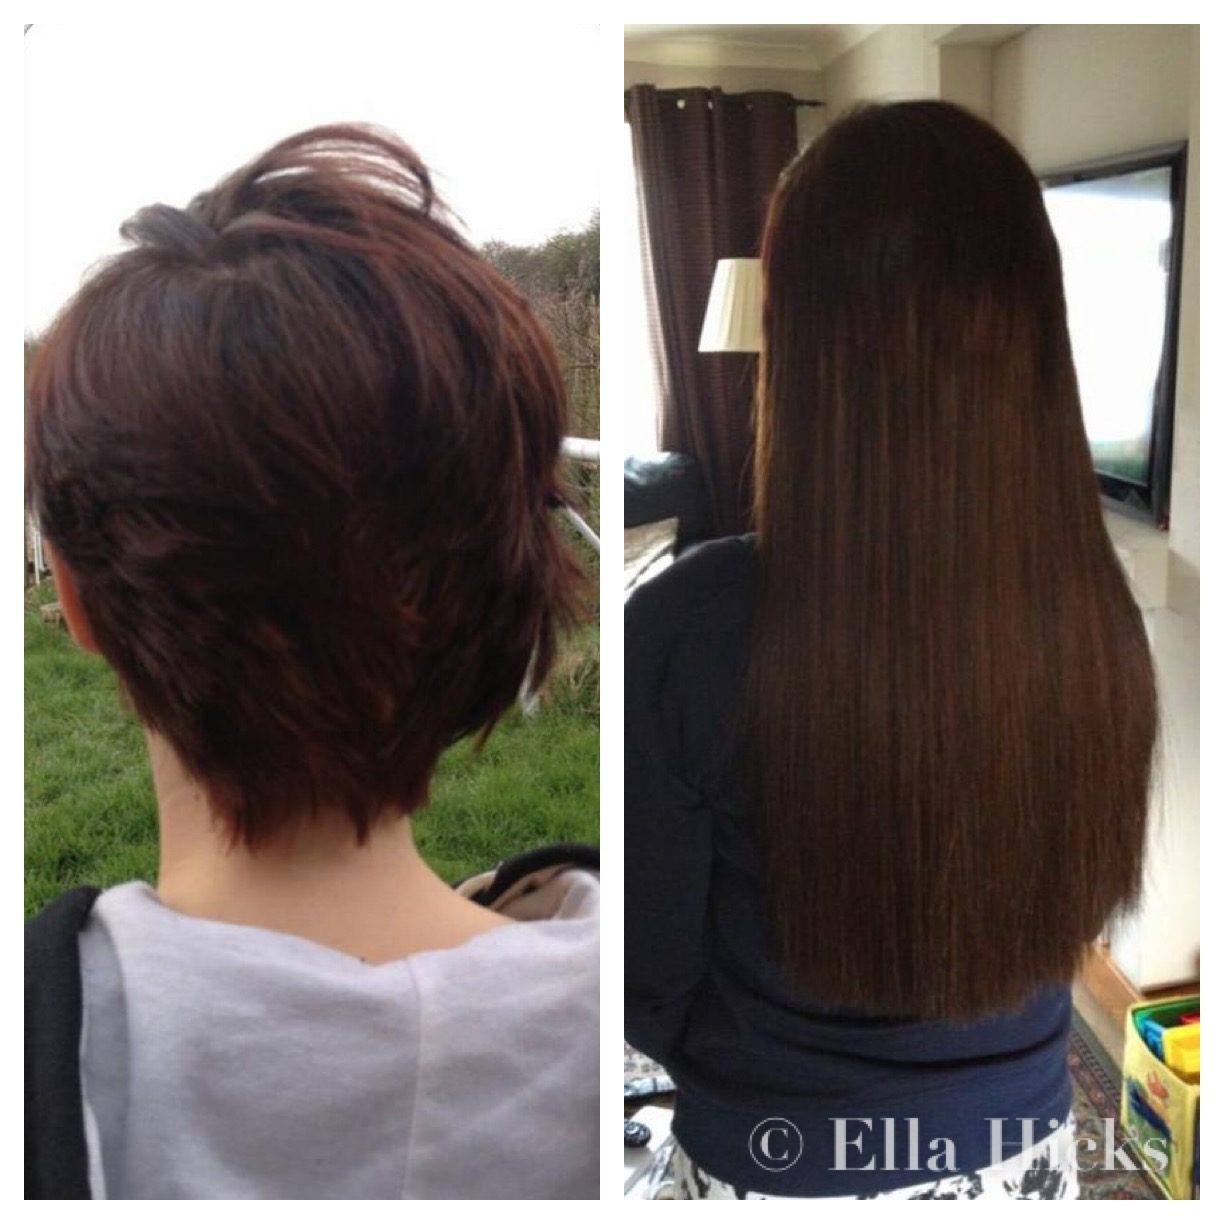 Ella hicks hair extensions portfolio short to long hair extensions pmusecretfo Image collections